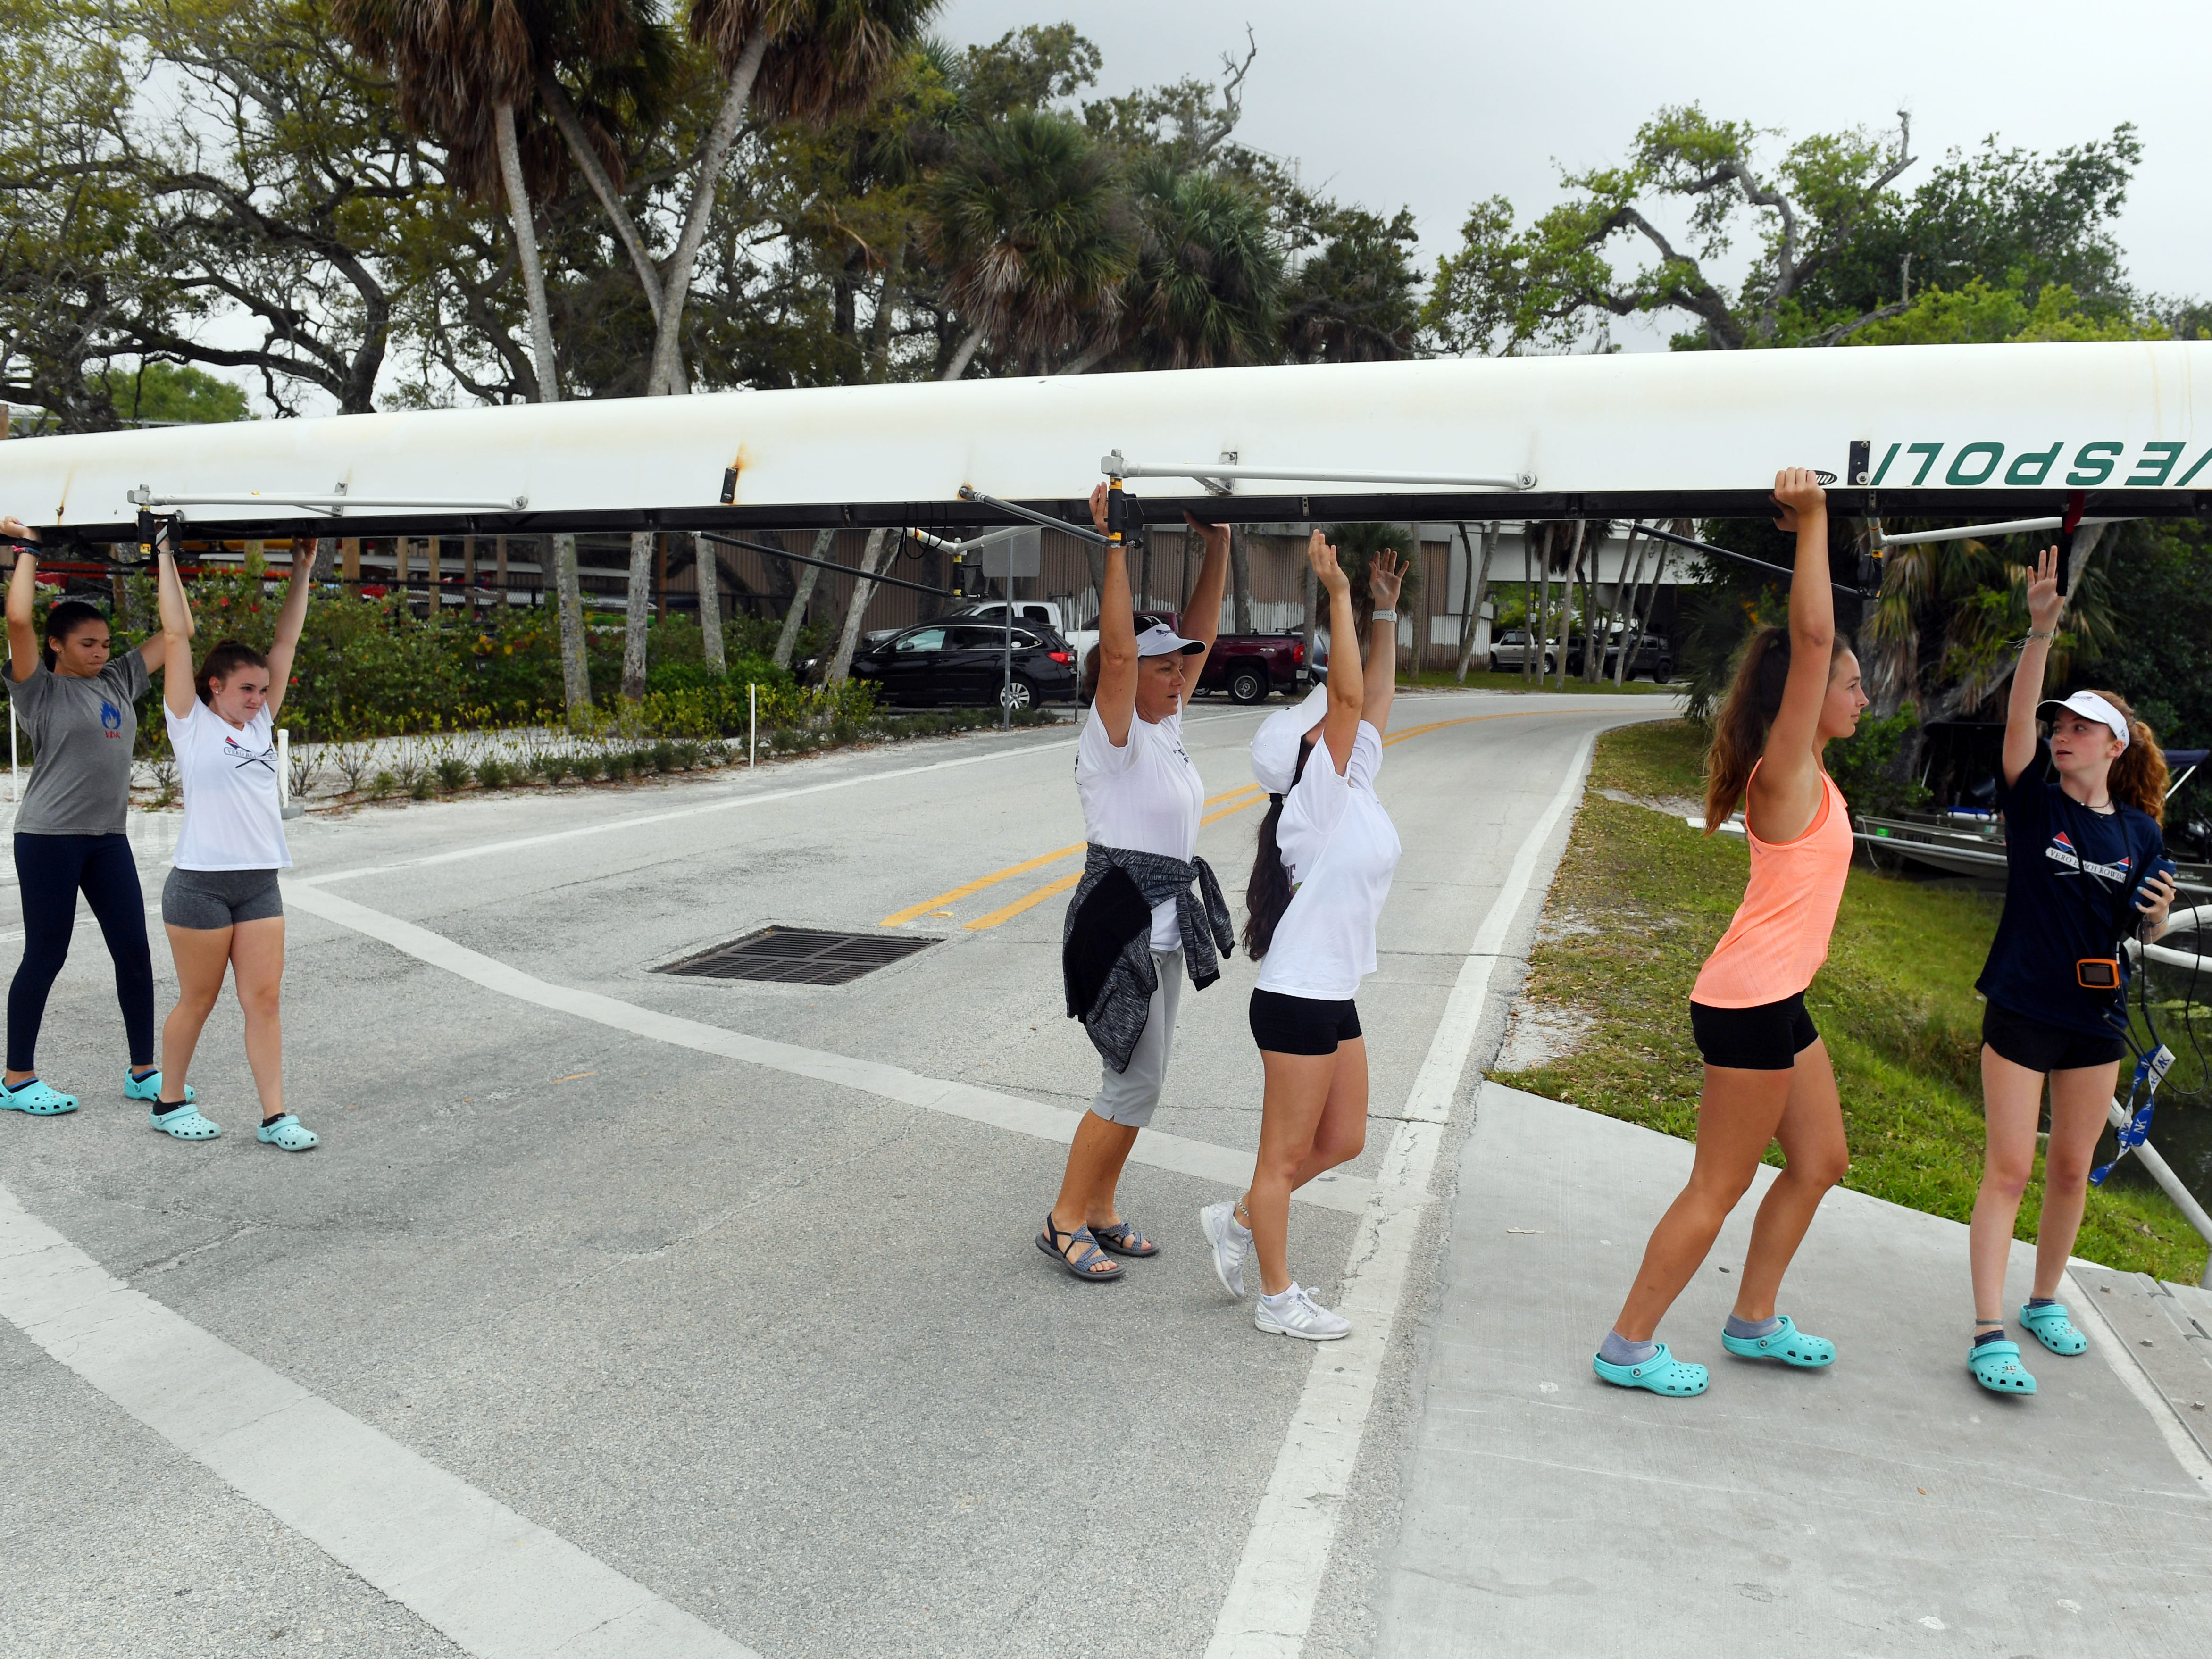 Female junior members of Vero Beach Rowing cross the street to the boat ramp on Tuesday, March 12, 2019 for the afternoon practice at McWilliams Park in Vero Beach. Currently, the club has about 30 youth members, but the club would like to increase that membership to 60, according to rowing coach Brian Colgan. The club has also been granted permission to start a $2.5 million construction project on a new boathouse.